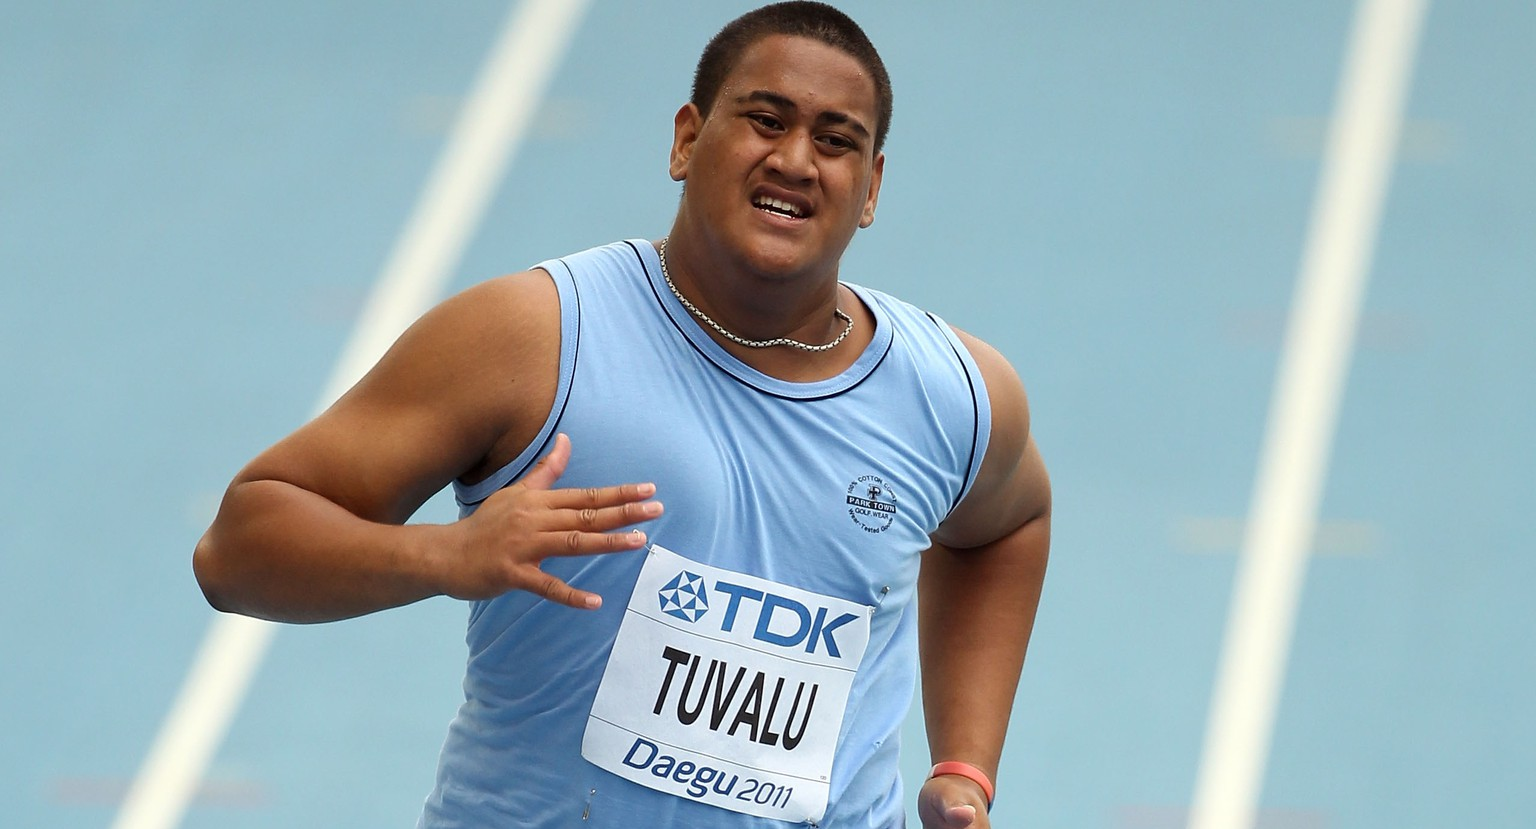 DAEGU, SOUTH KOREA - AUGUST 27:  Sogelau Tuvalu of American Samoa competes in the men's 100 metres preliminary round during day one of the 13th IAAF World Athletics Championships at the Daegu Stadium on August 27, 2011 in Daegu, South Korea.  (Photo by Ian Walton/Getty Images)